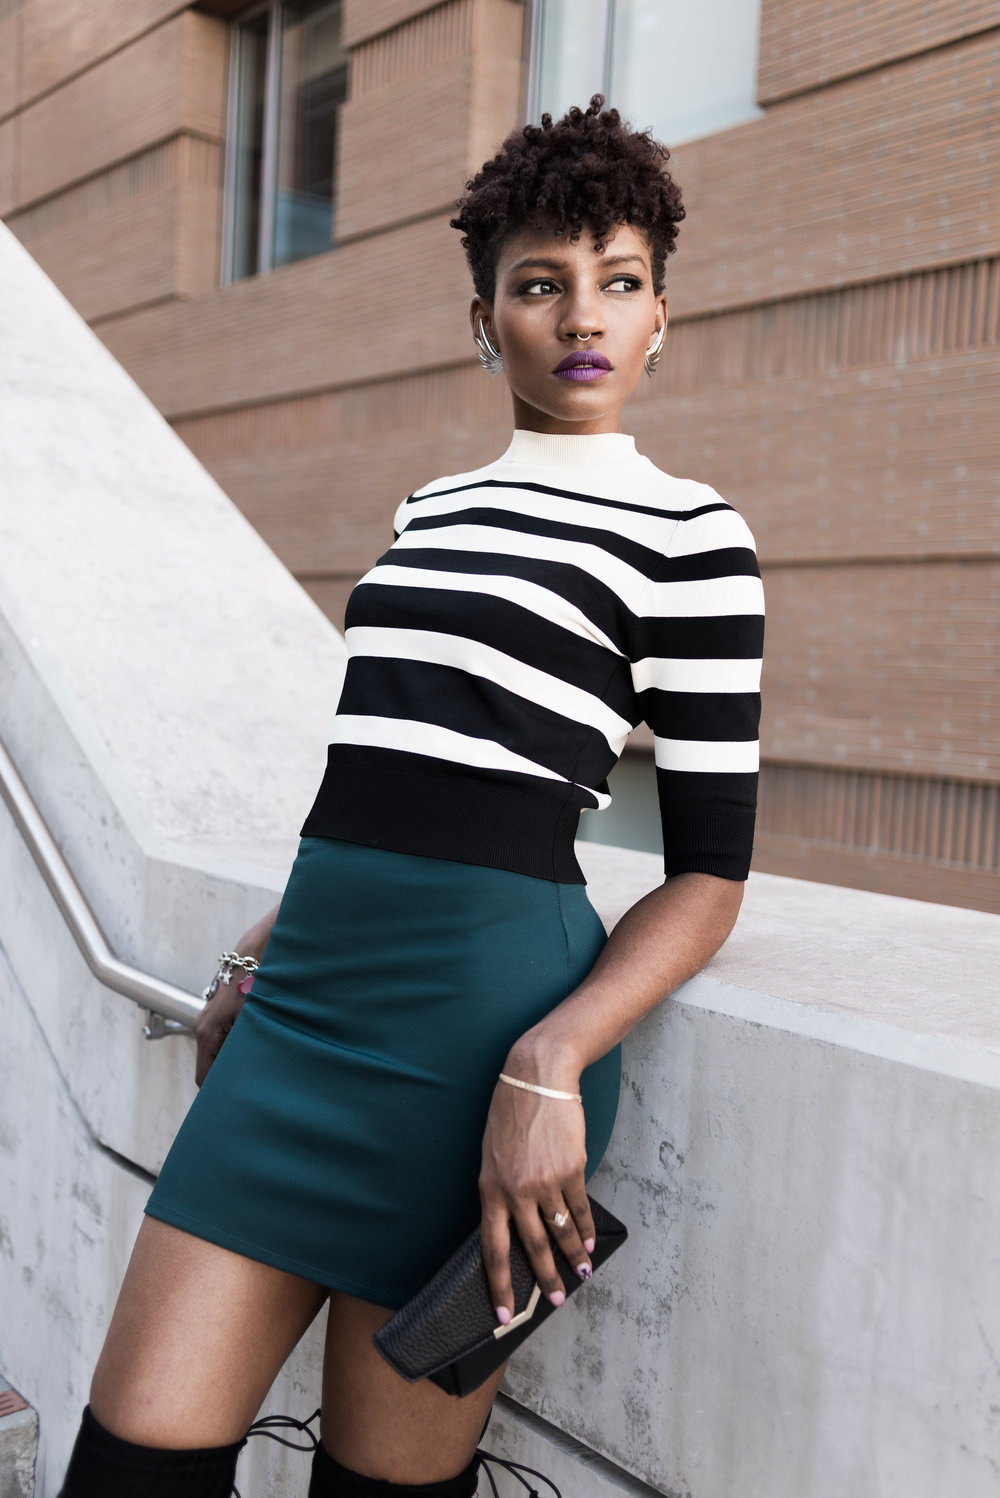 High Contrast  - Subtle Color + Bold Stripes + Statement Earrings = Flyness